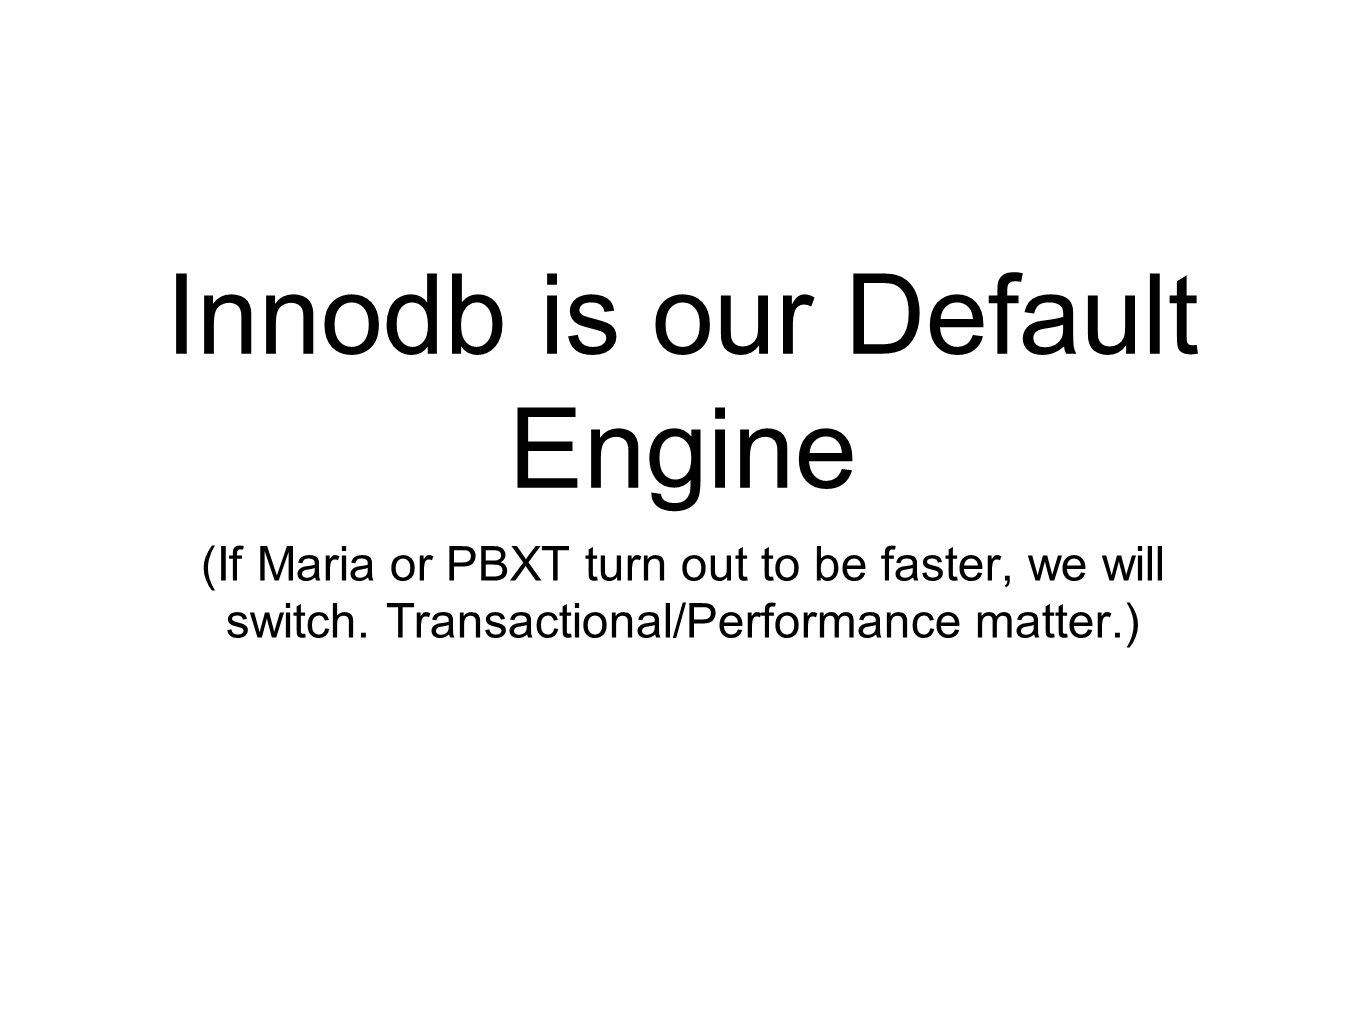 Innodb is our Default Engine (If Maria or PBXT turn out to be faster, we will switch.